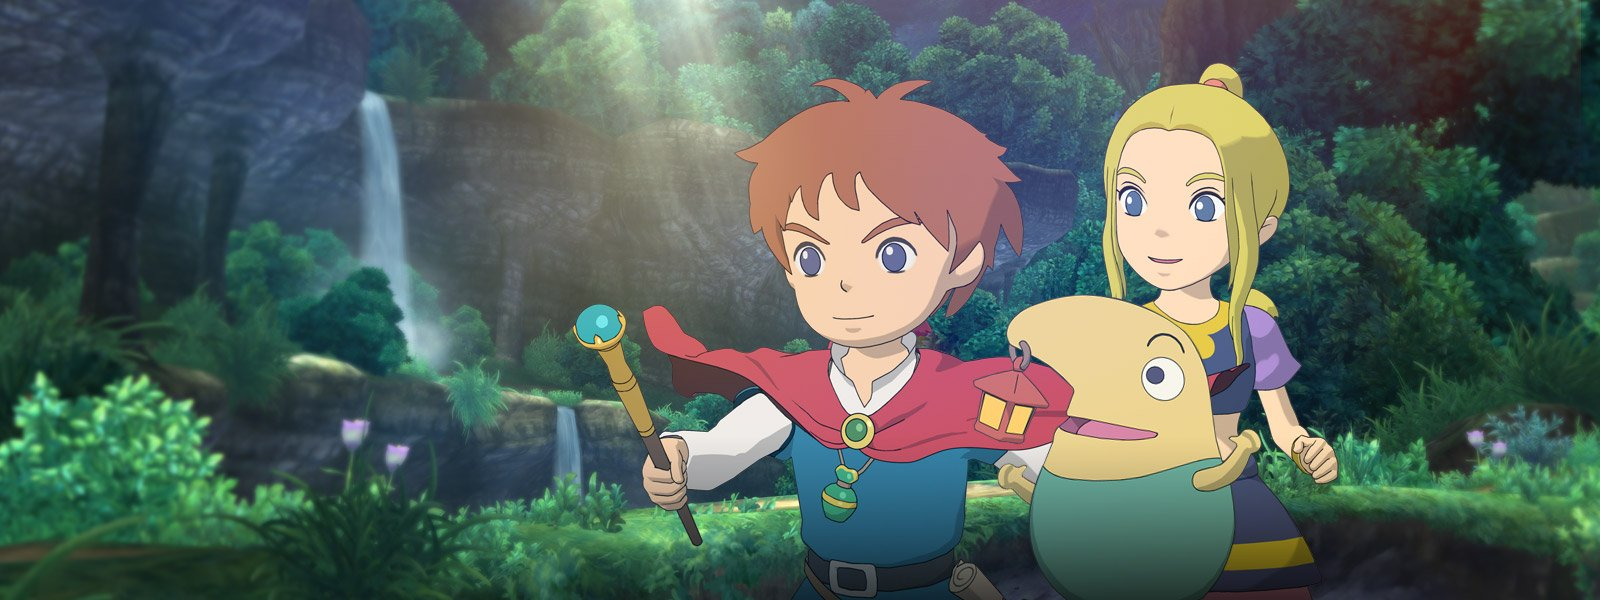 Ni no Kuni and Kids' Games: Simplicity without Patronizing 2